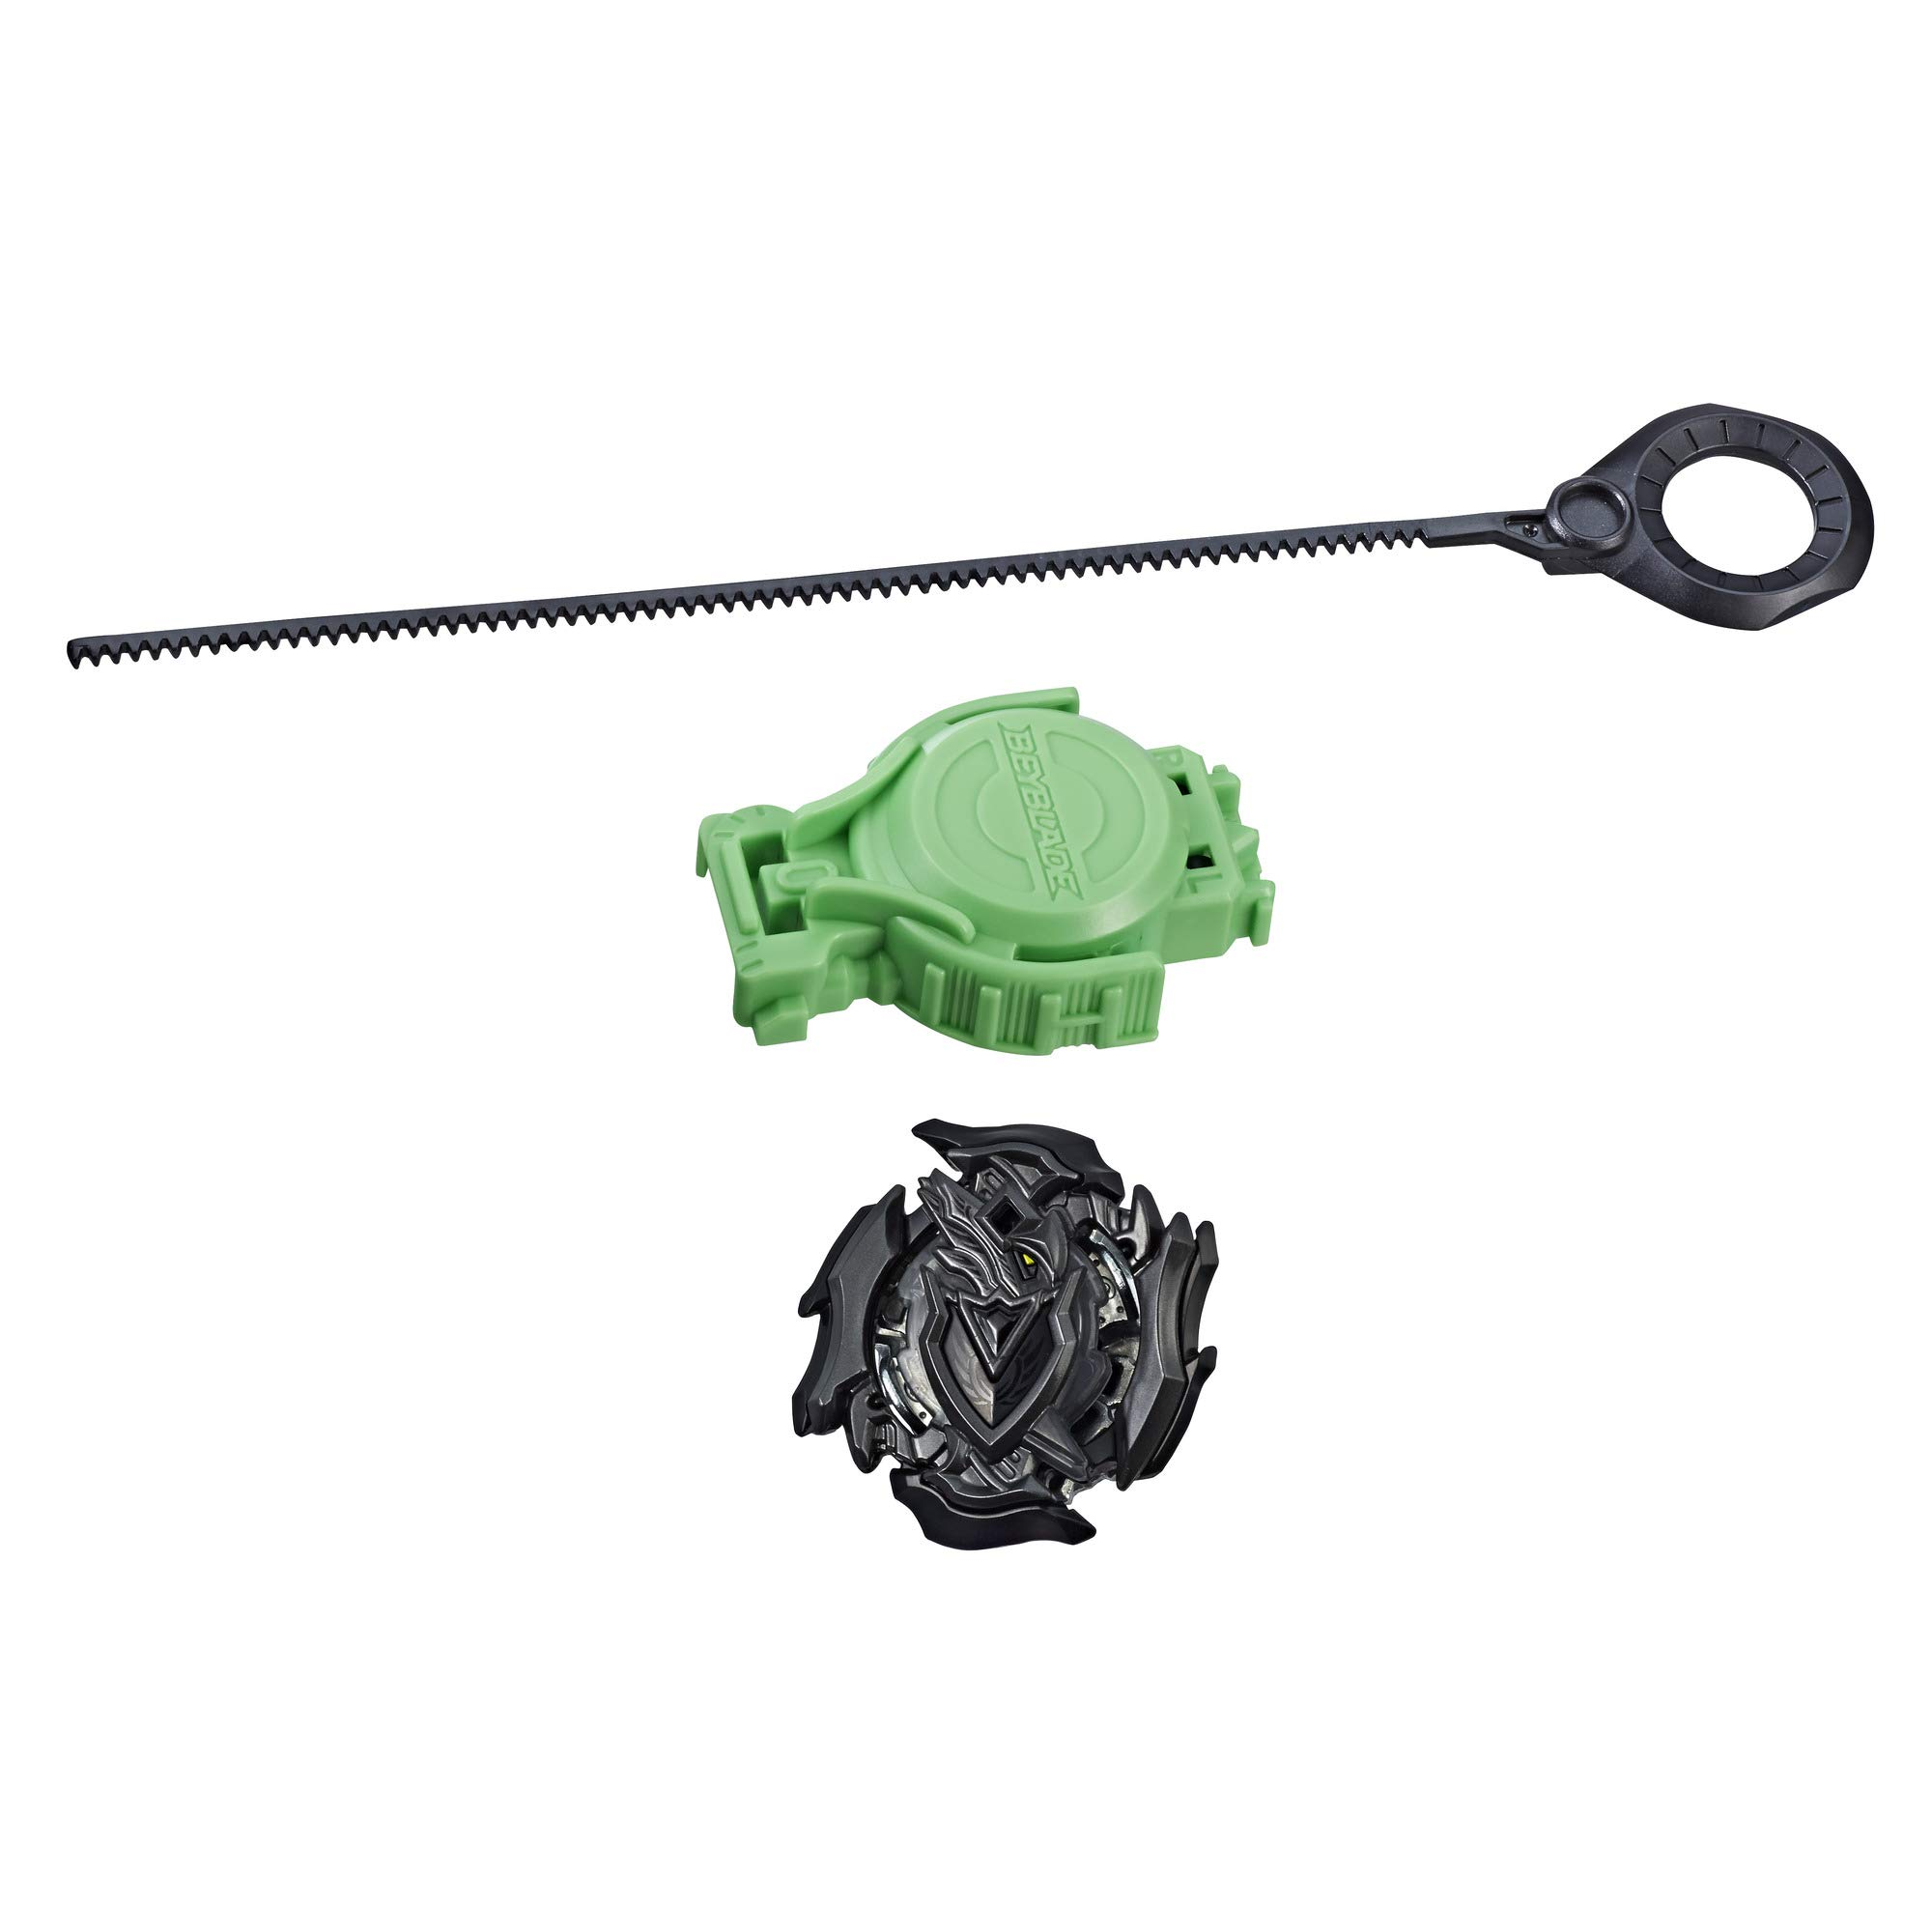 BEYBLADE Burst Turbo Slingshock Z Achilles A4 Starter Pack -- Battling Top and Right/Left-Spin Launcher, Age 8+ by BEYBLADE